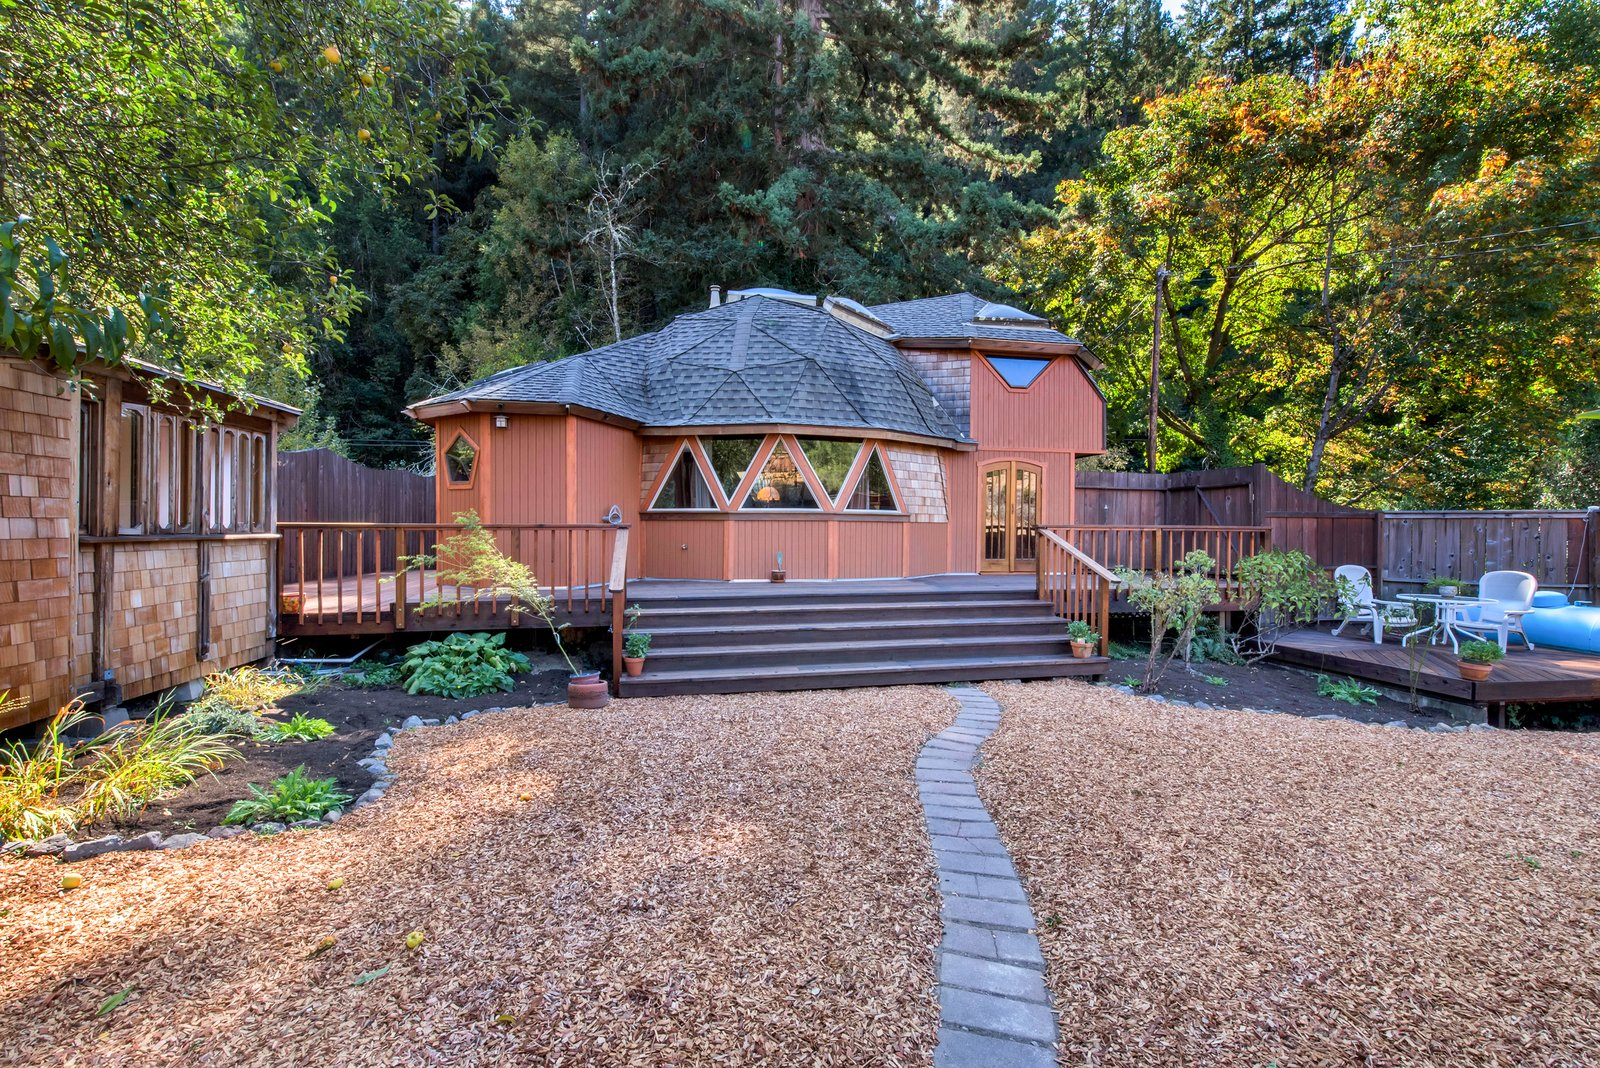 The property features not only the geodesic dome home, but also a large yard and two additional structures.